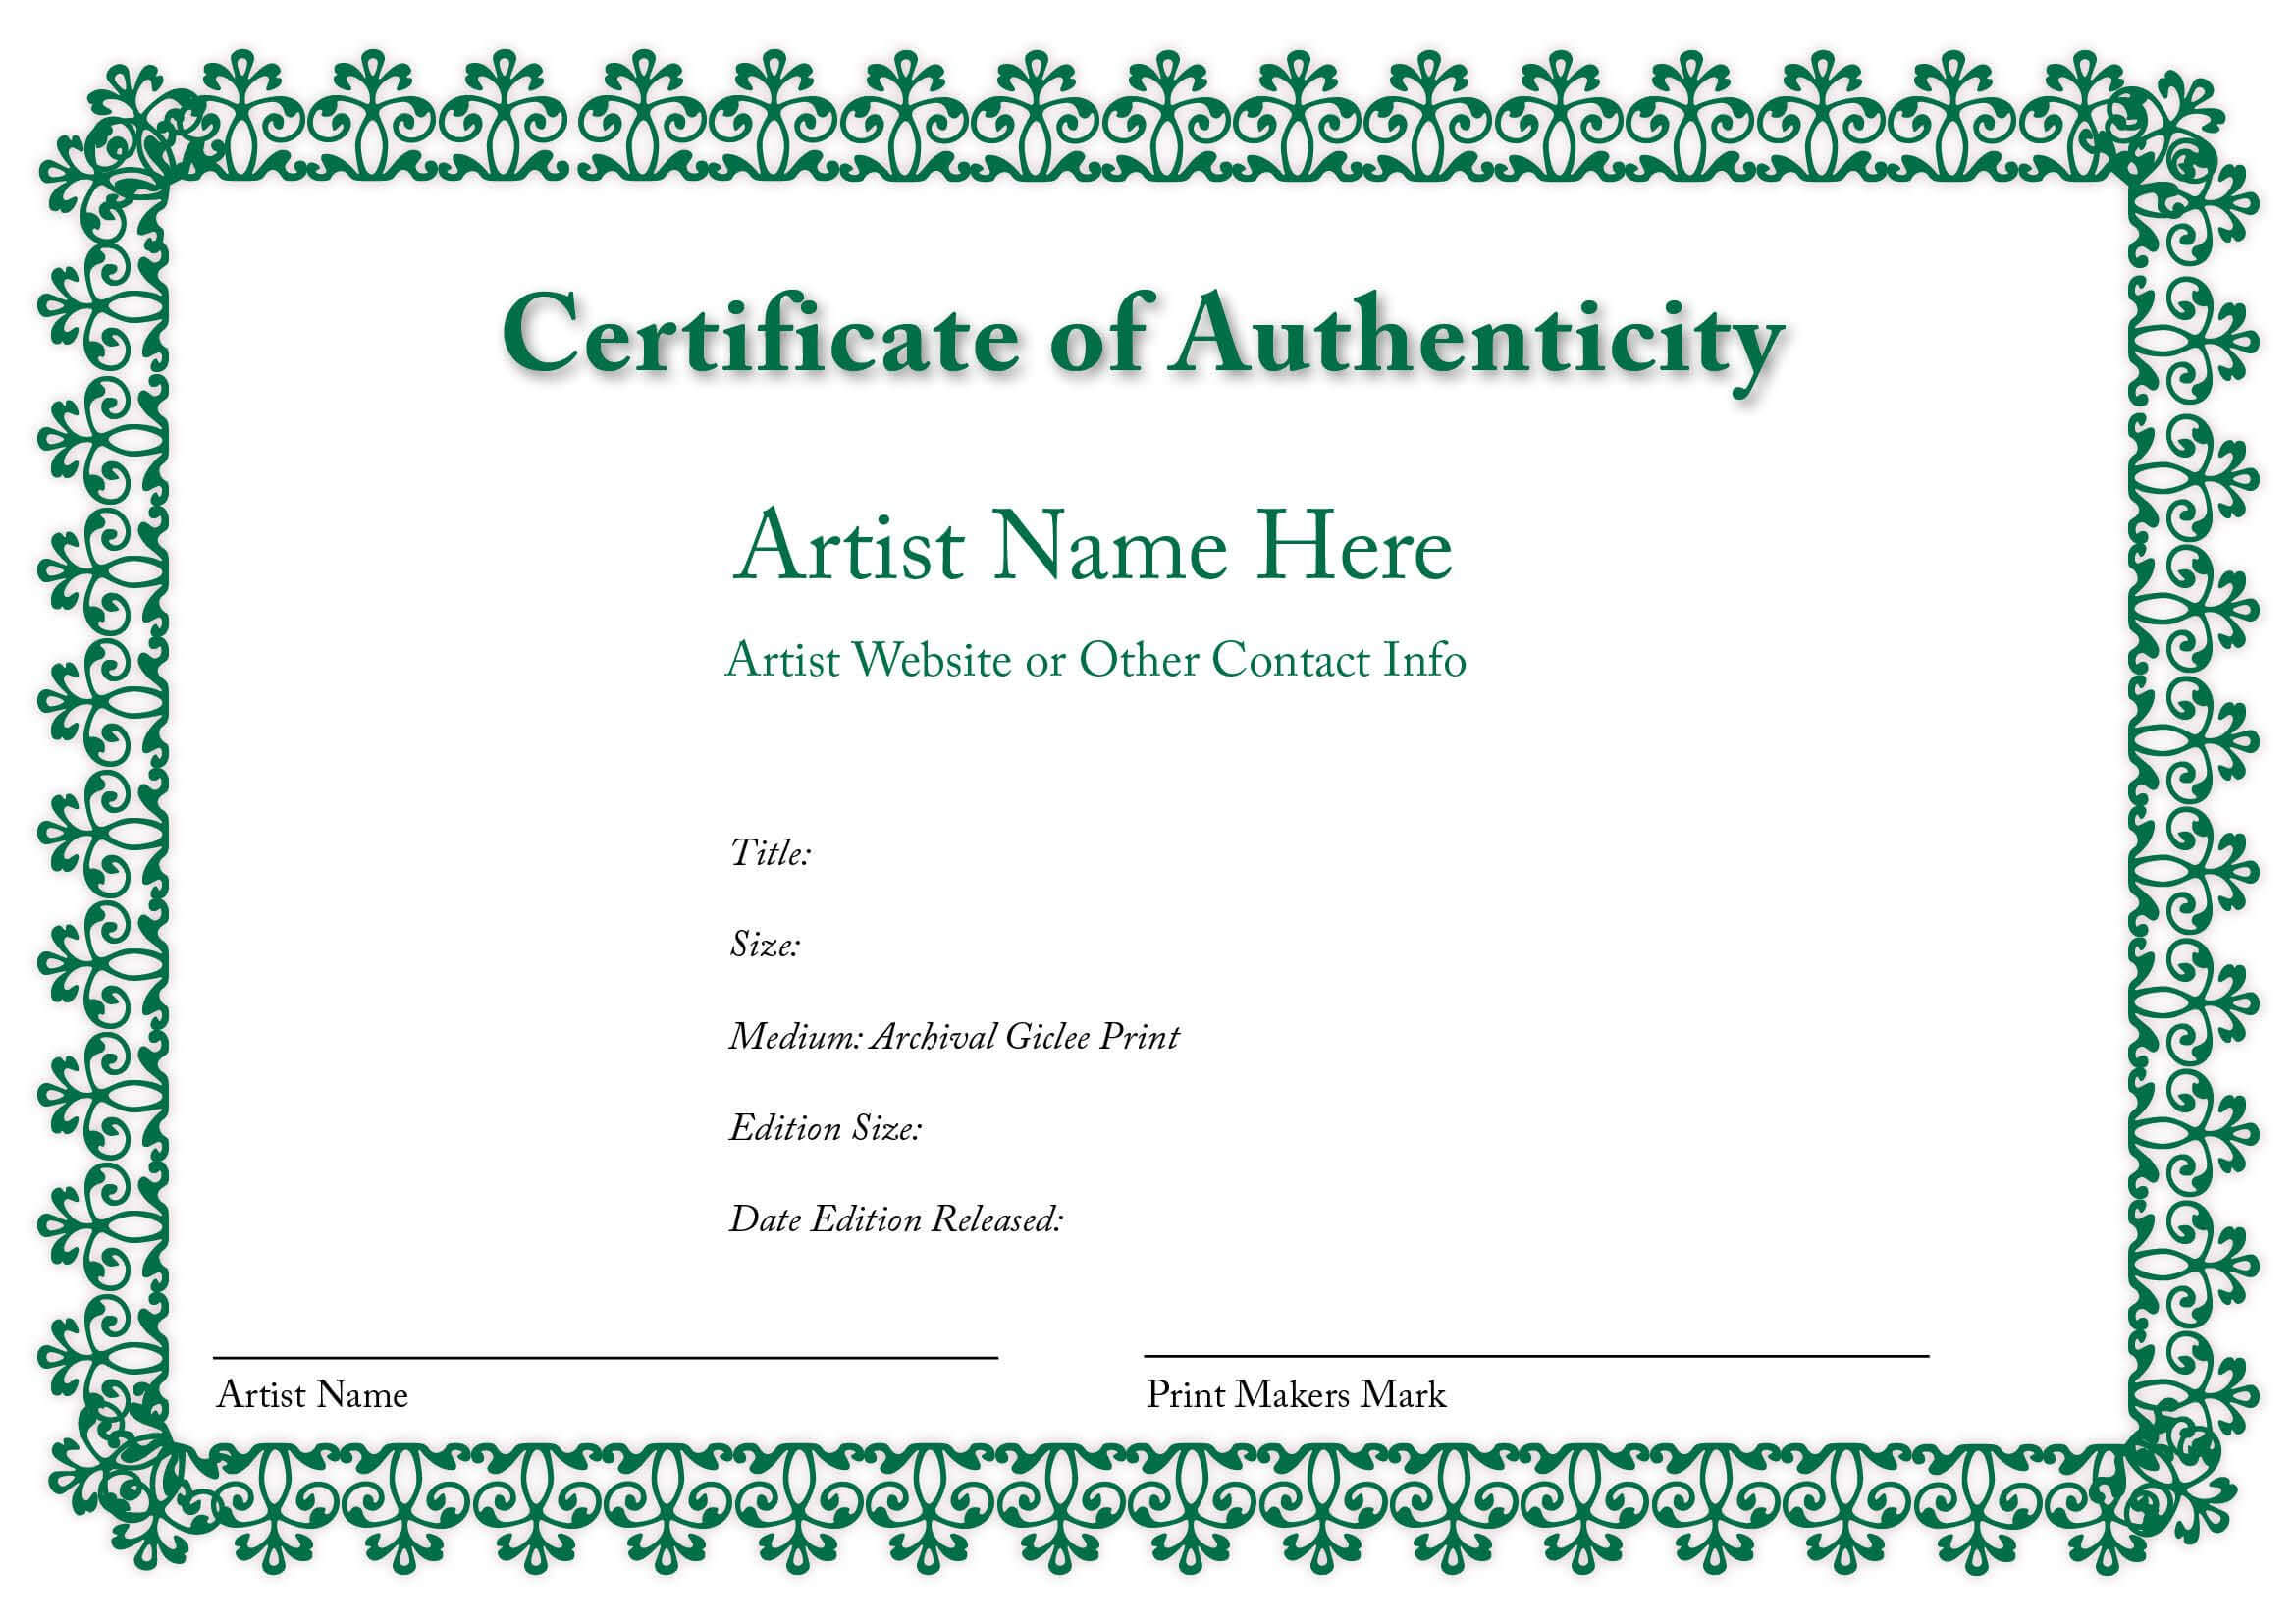 Certificate Of Authenticity Of An Art Print | Certificate Throughout Certificate Of Authenticity Template